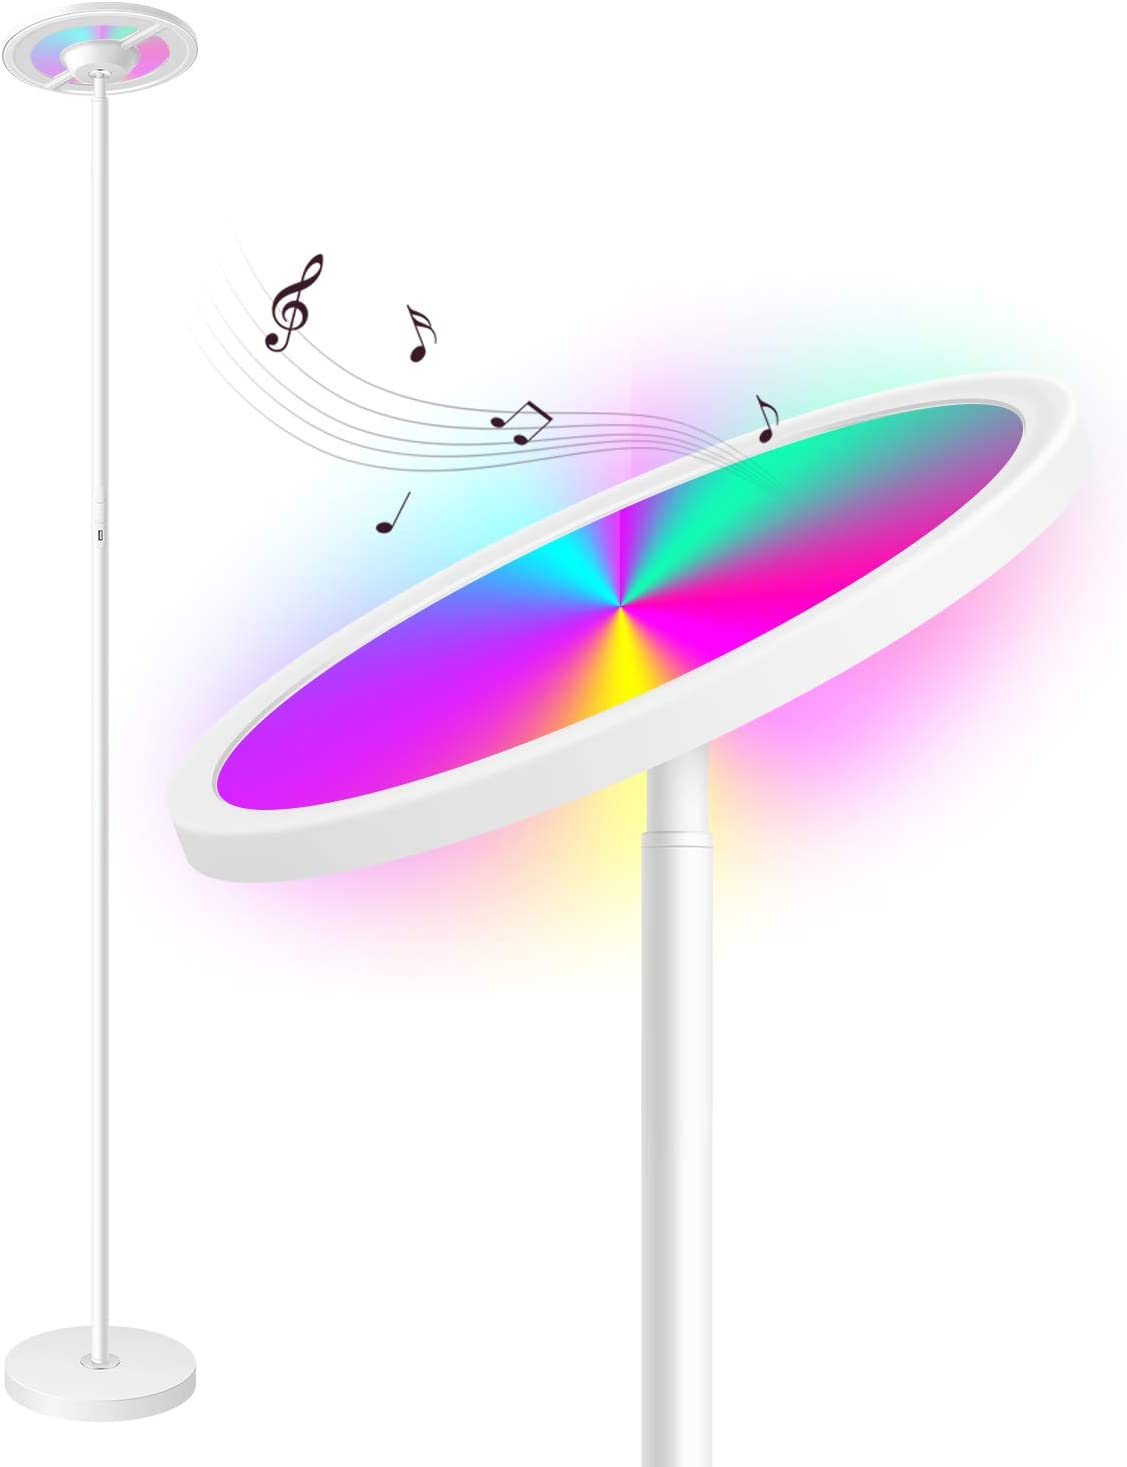 Torkase 66 in. Smart Floor Lamp Works with Alexa Google Home, Color Changing Sky LED Torchiere, 2000LM Super Bright, App & Touch Control for Living Room Bedroom Office Reading & Decor-White